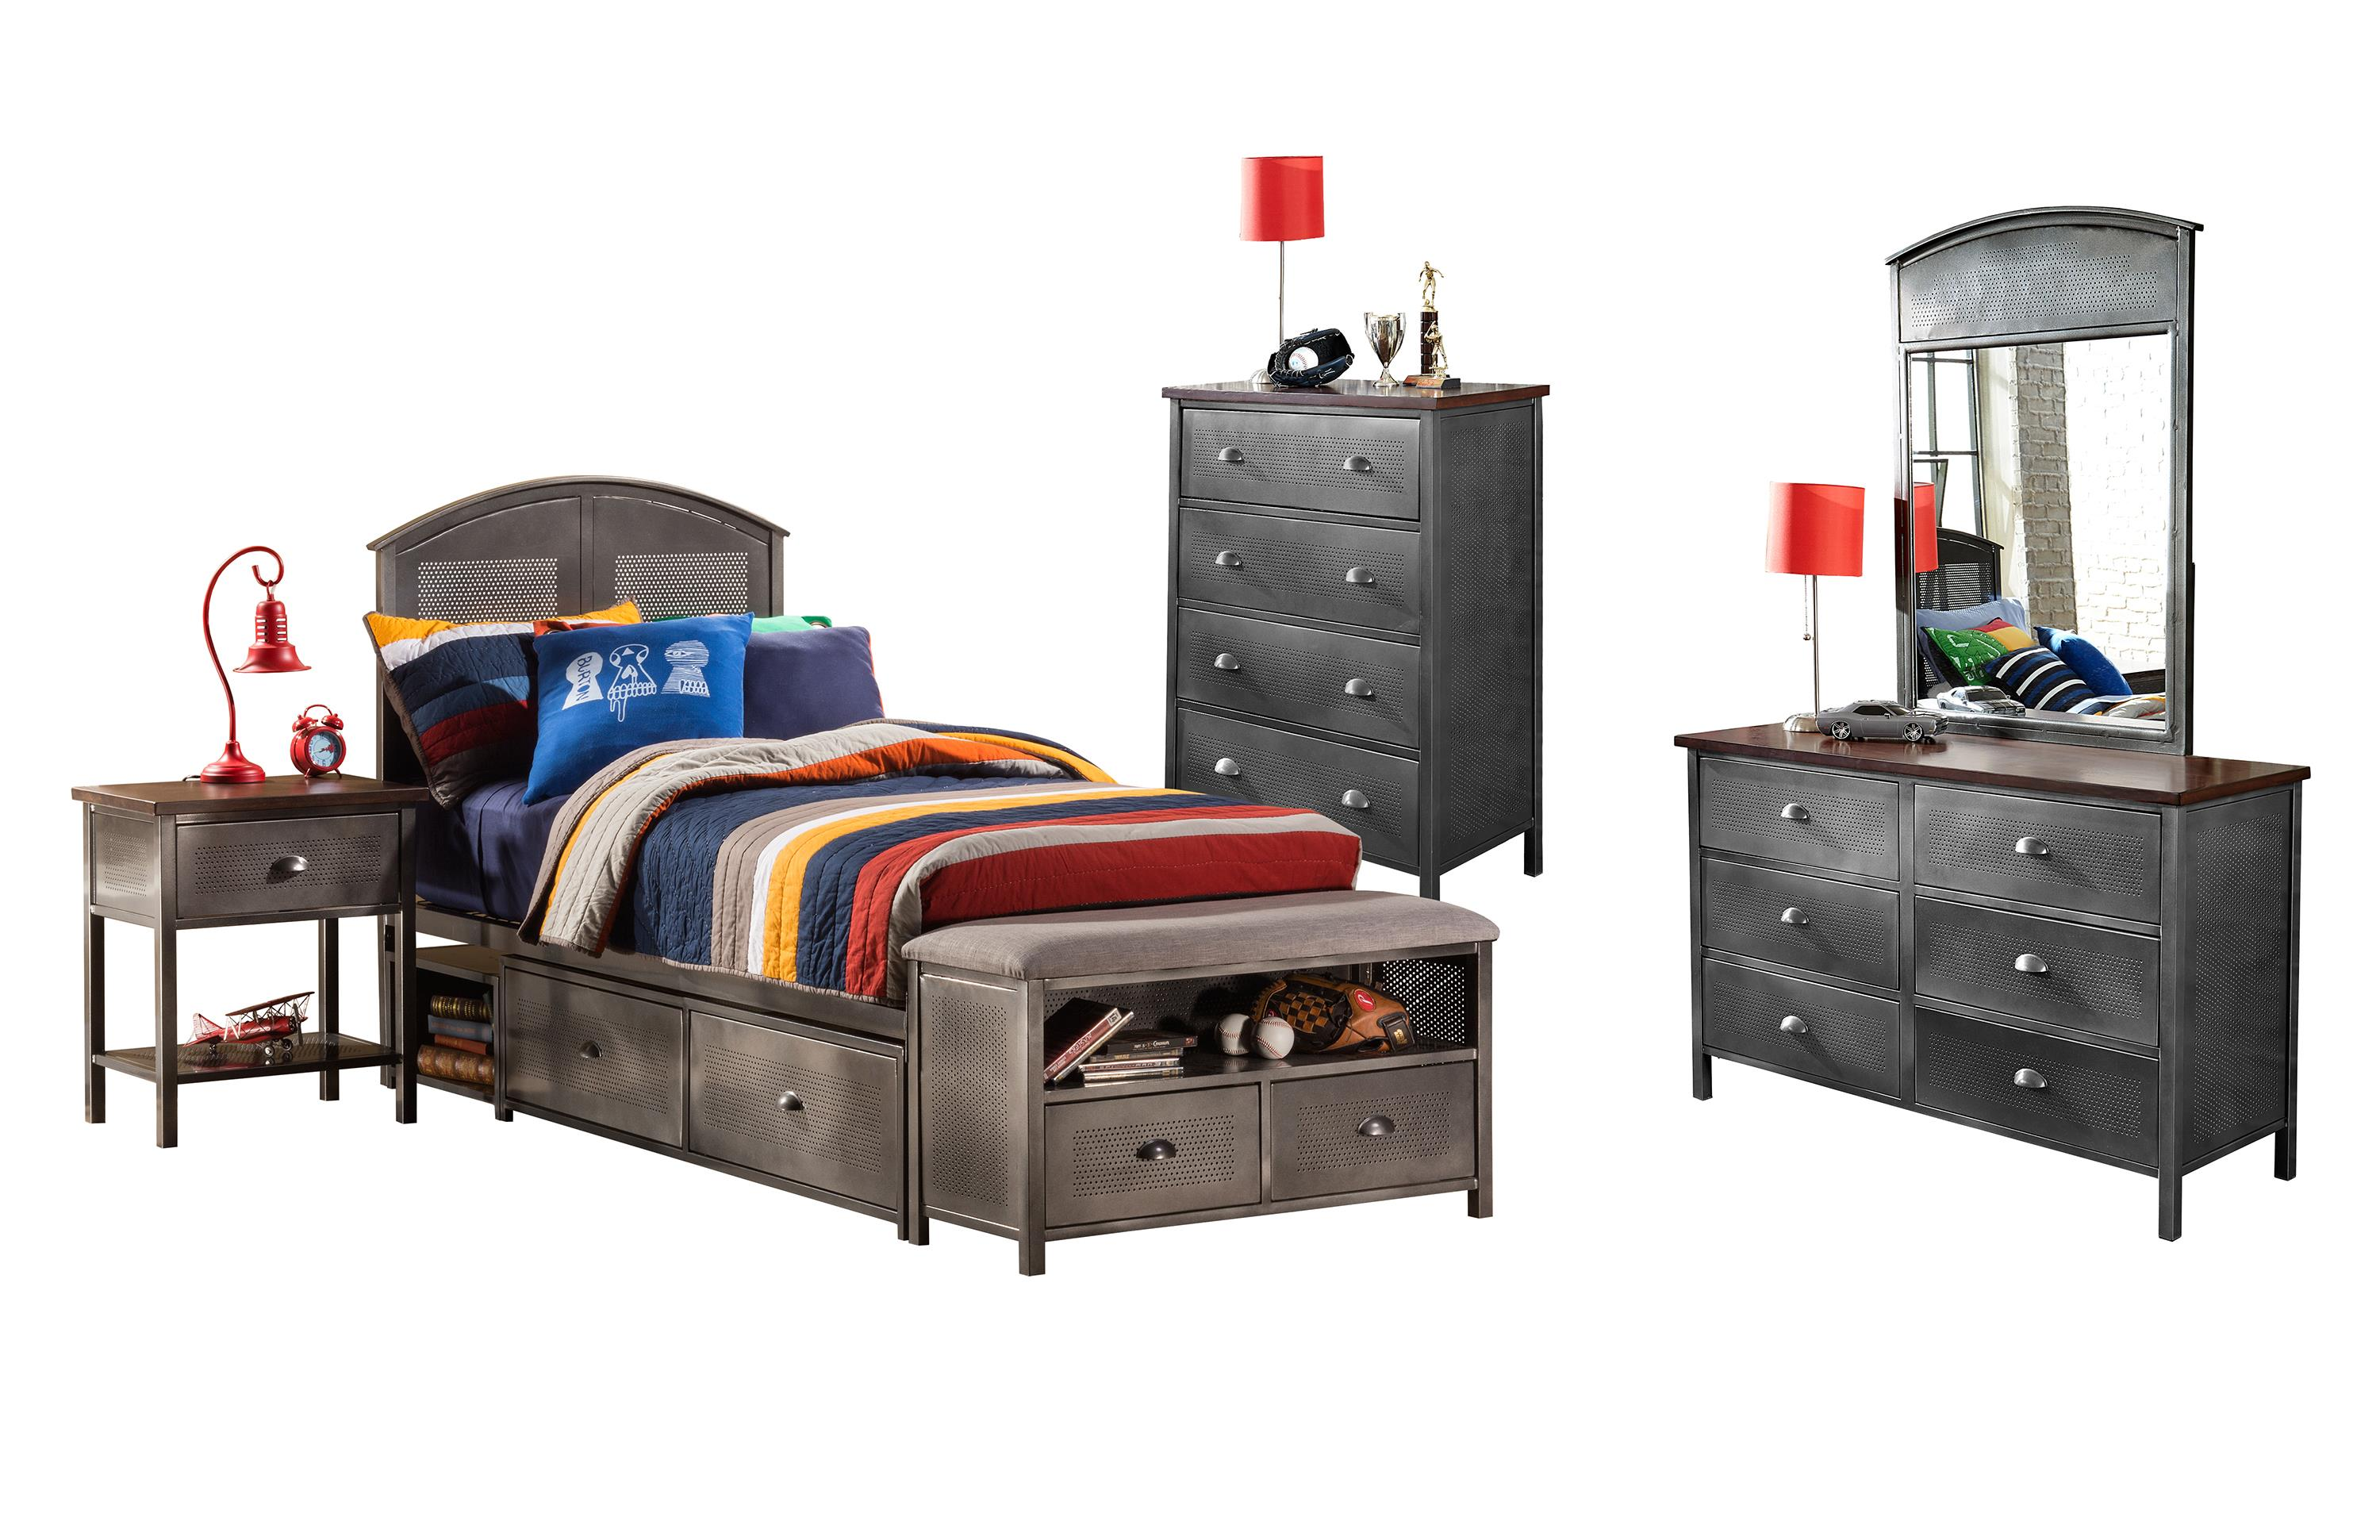 Urban Quarters Five Piece Twin Storage Bed Set by Hillsdale at Stoney Creek Furniture